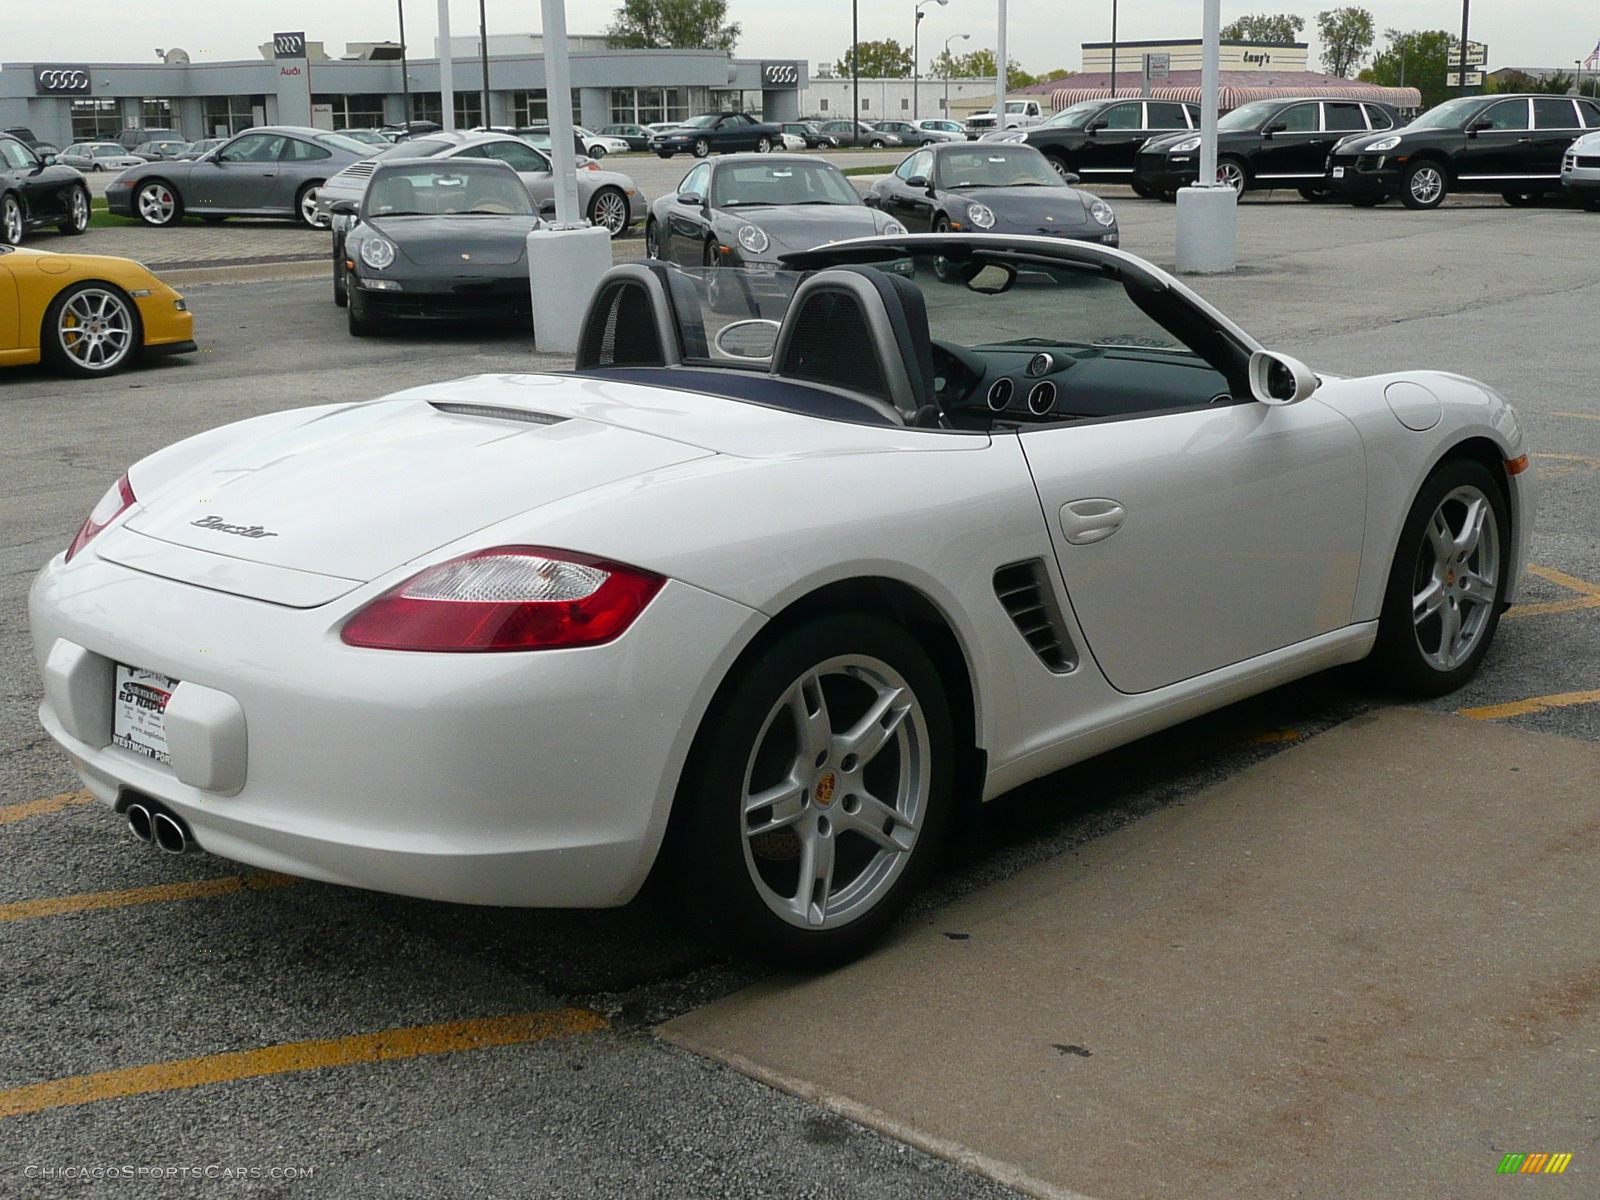 2007 porsche boxster in carrara white photo 12 711940 cars for sale. Black Bedroom Furniture Sets. Home Design Ideas